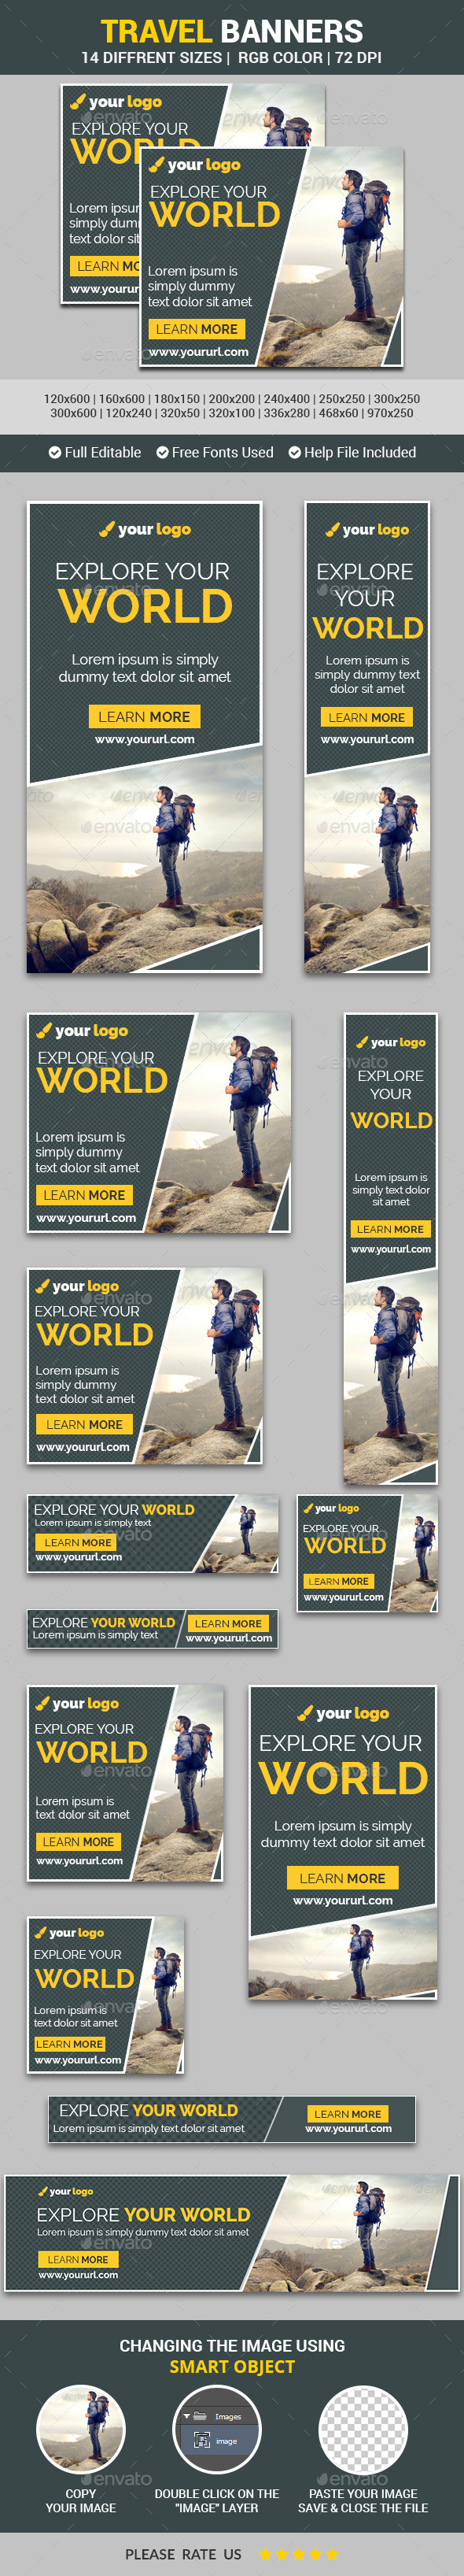 Travel Banners v10 - Banners & Ads Web Elements